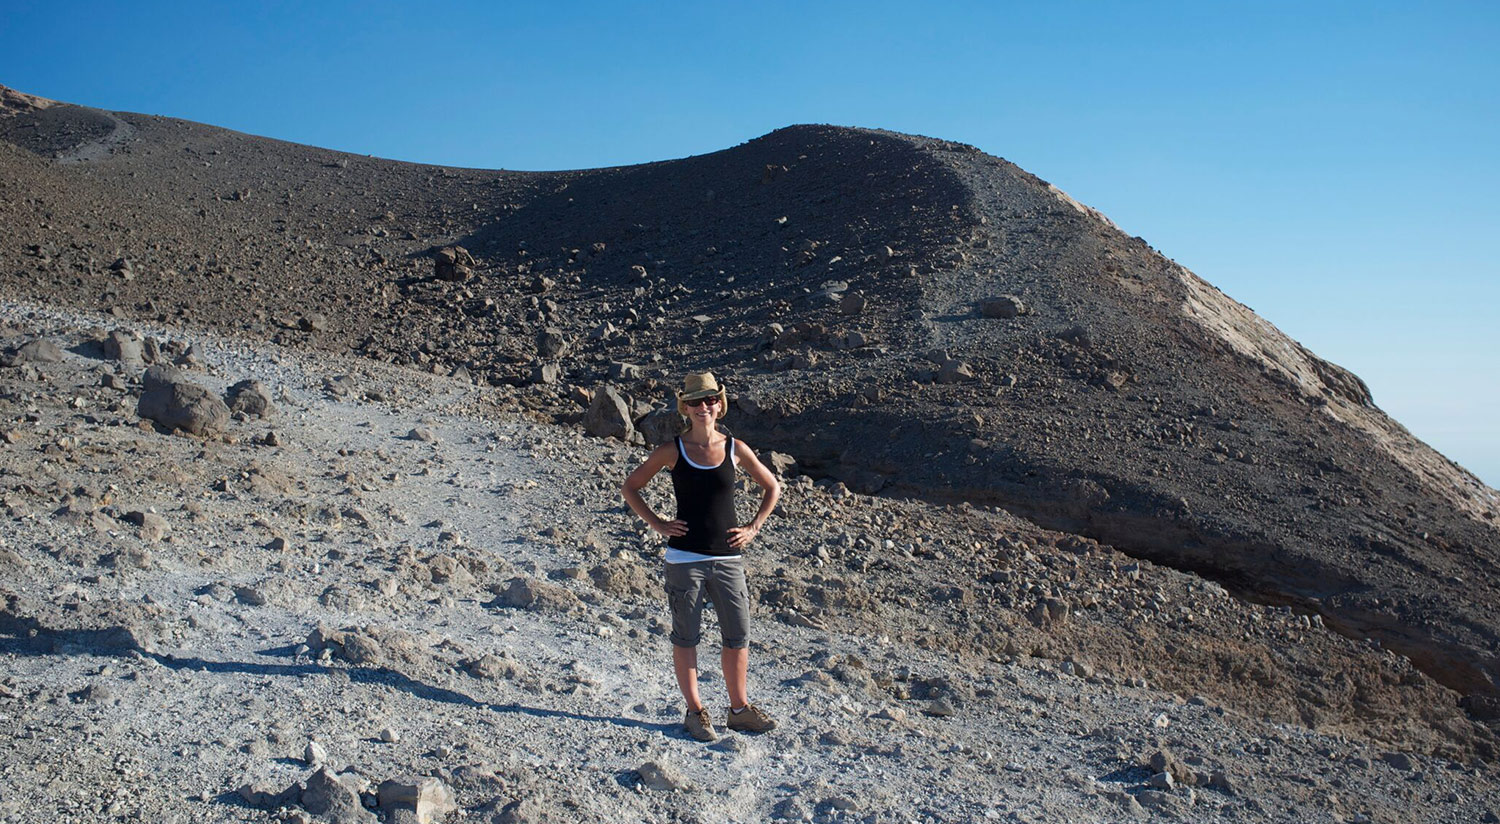 Exploring a volcanic landscape on the Aeolian Island of Vulcano in Italy, which is a research area of interest Meghan's my studies of subduction zone evolution and links to volcanic processes. Image: Associate Professor Meghan Miller.